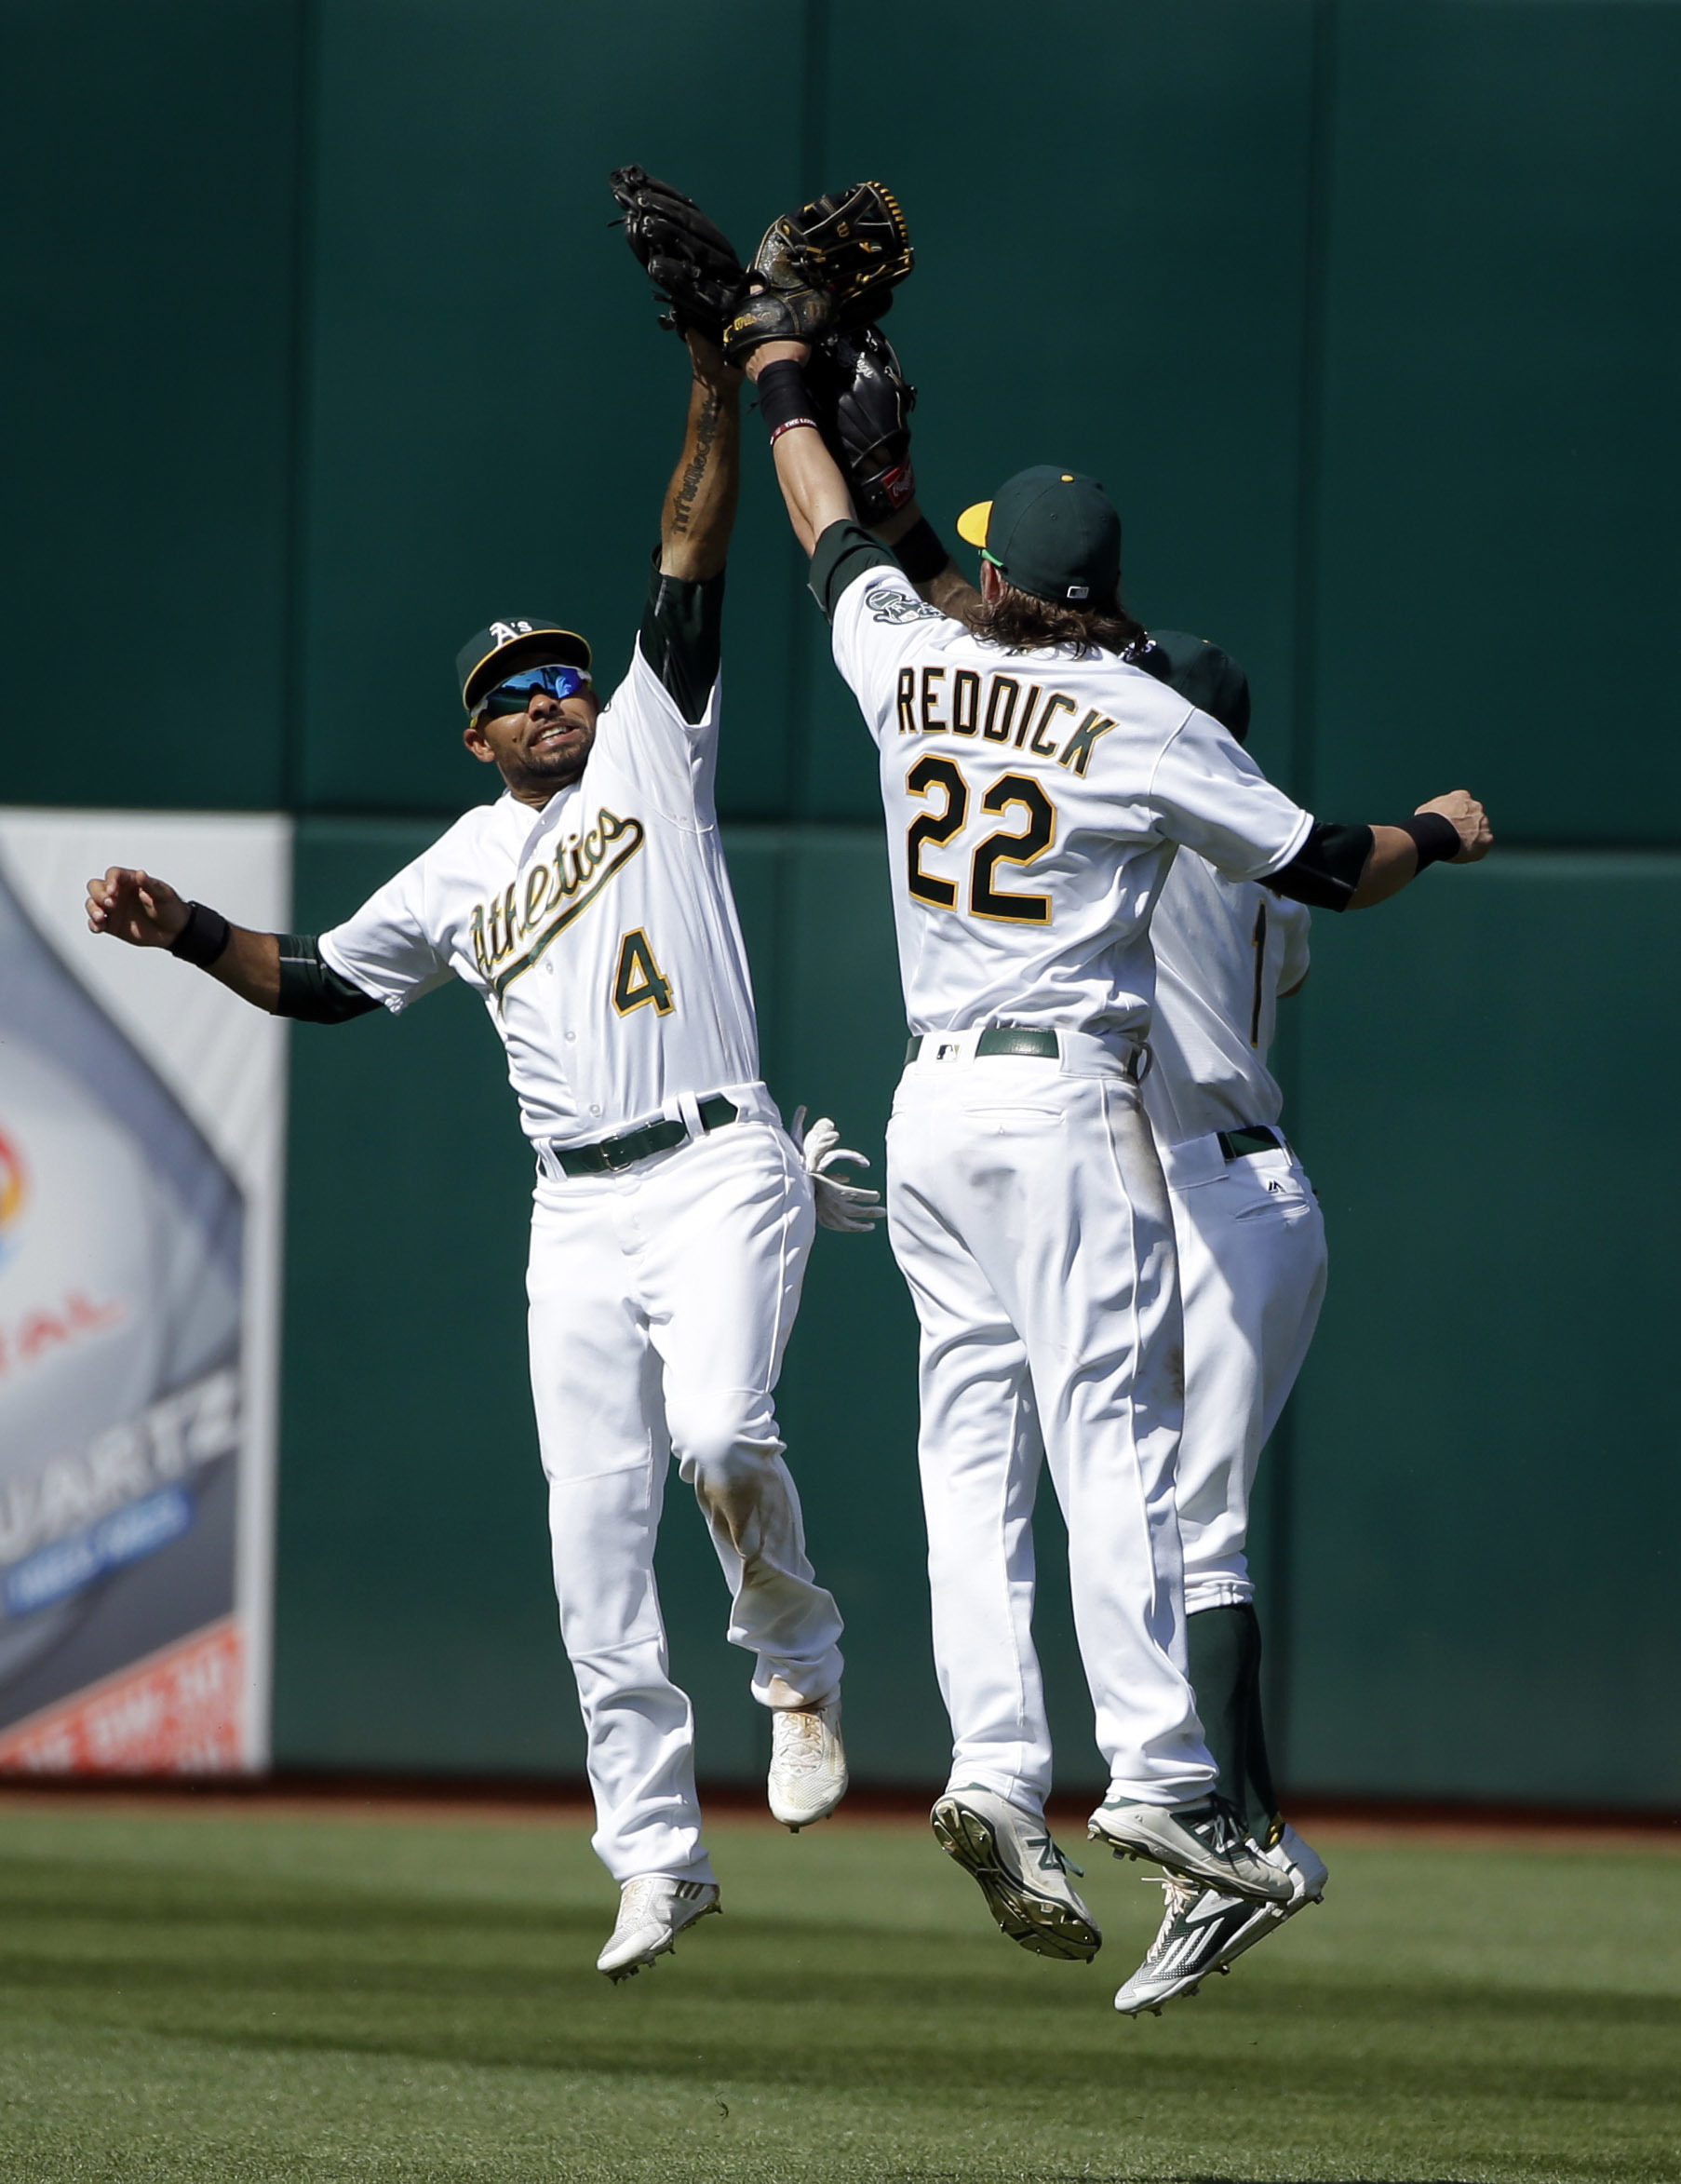 Oakland Athletics' Josh Reddick (22) and Coco Crisp (4) celebrate after a 3-2 win over the Kansas City Royals during a baseball game Sunday, April 17, 2016, in Oakland, Calif. (AP Photo/Marcio Jose Sanchez)